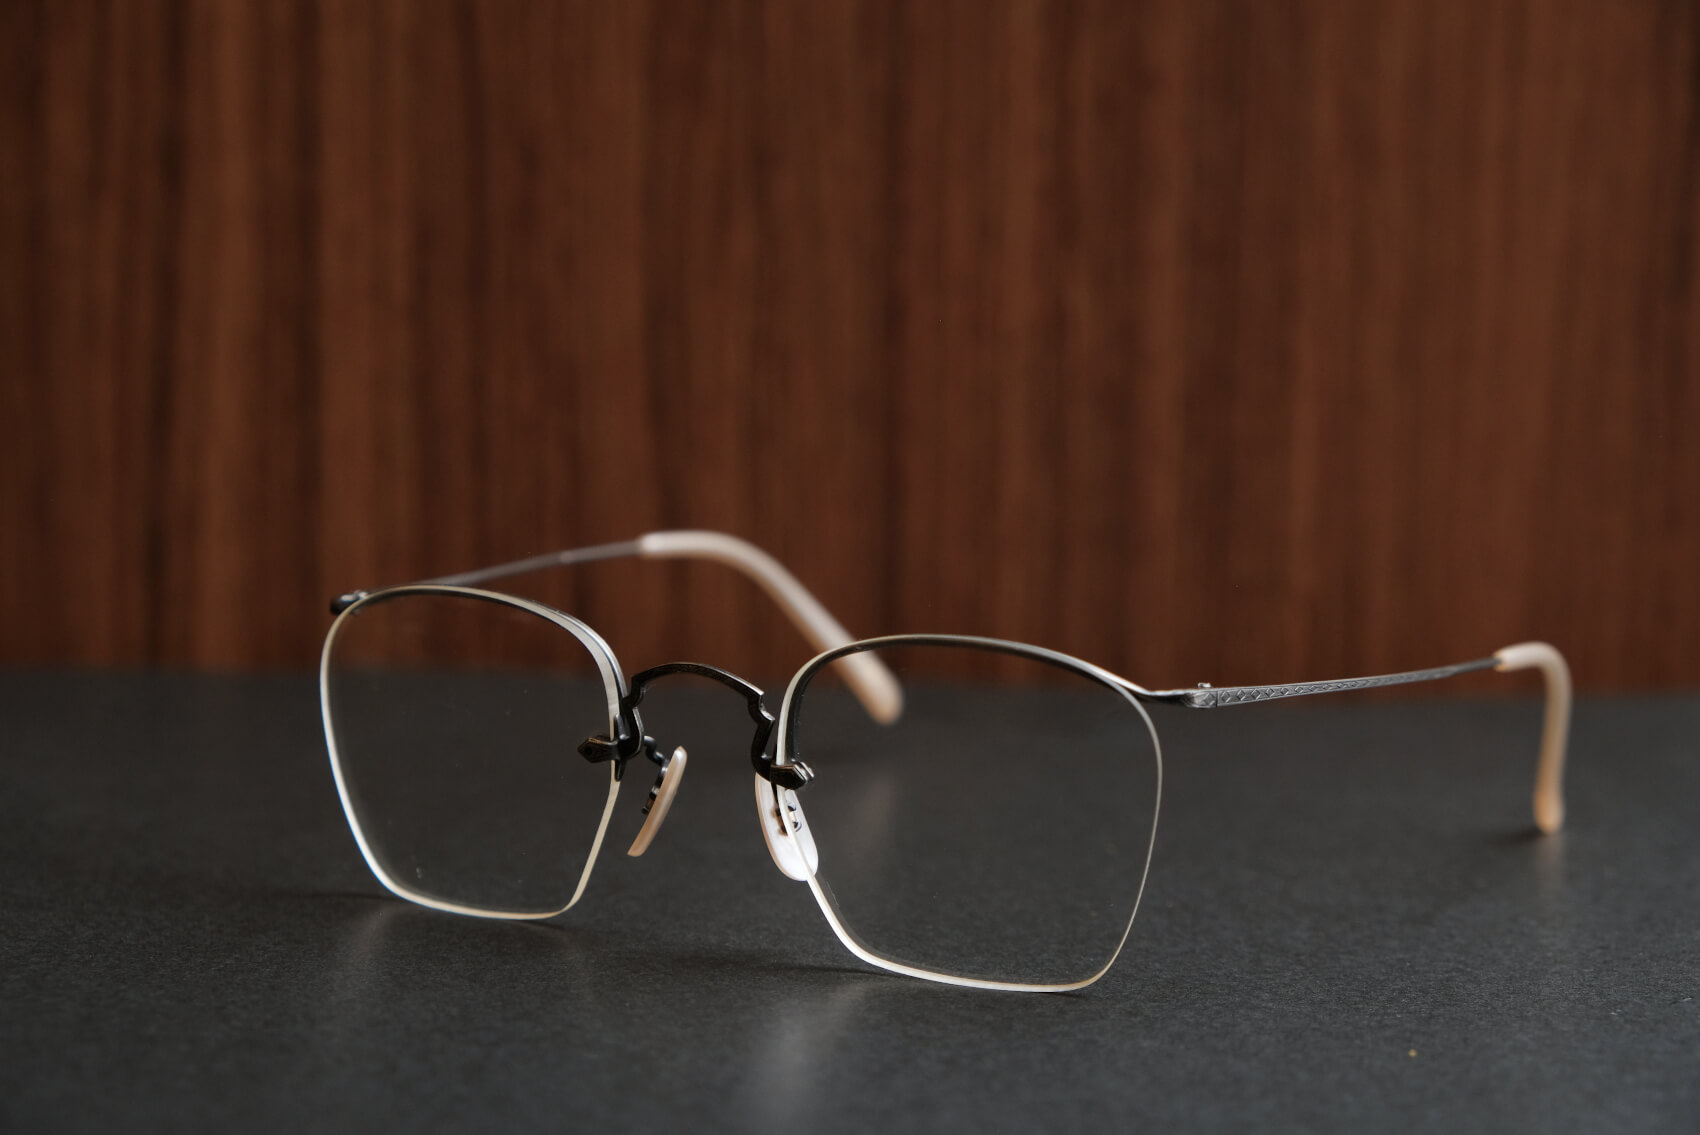 OLIVER PEOPLES‐OP-28-A-P